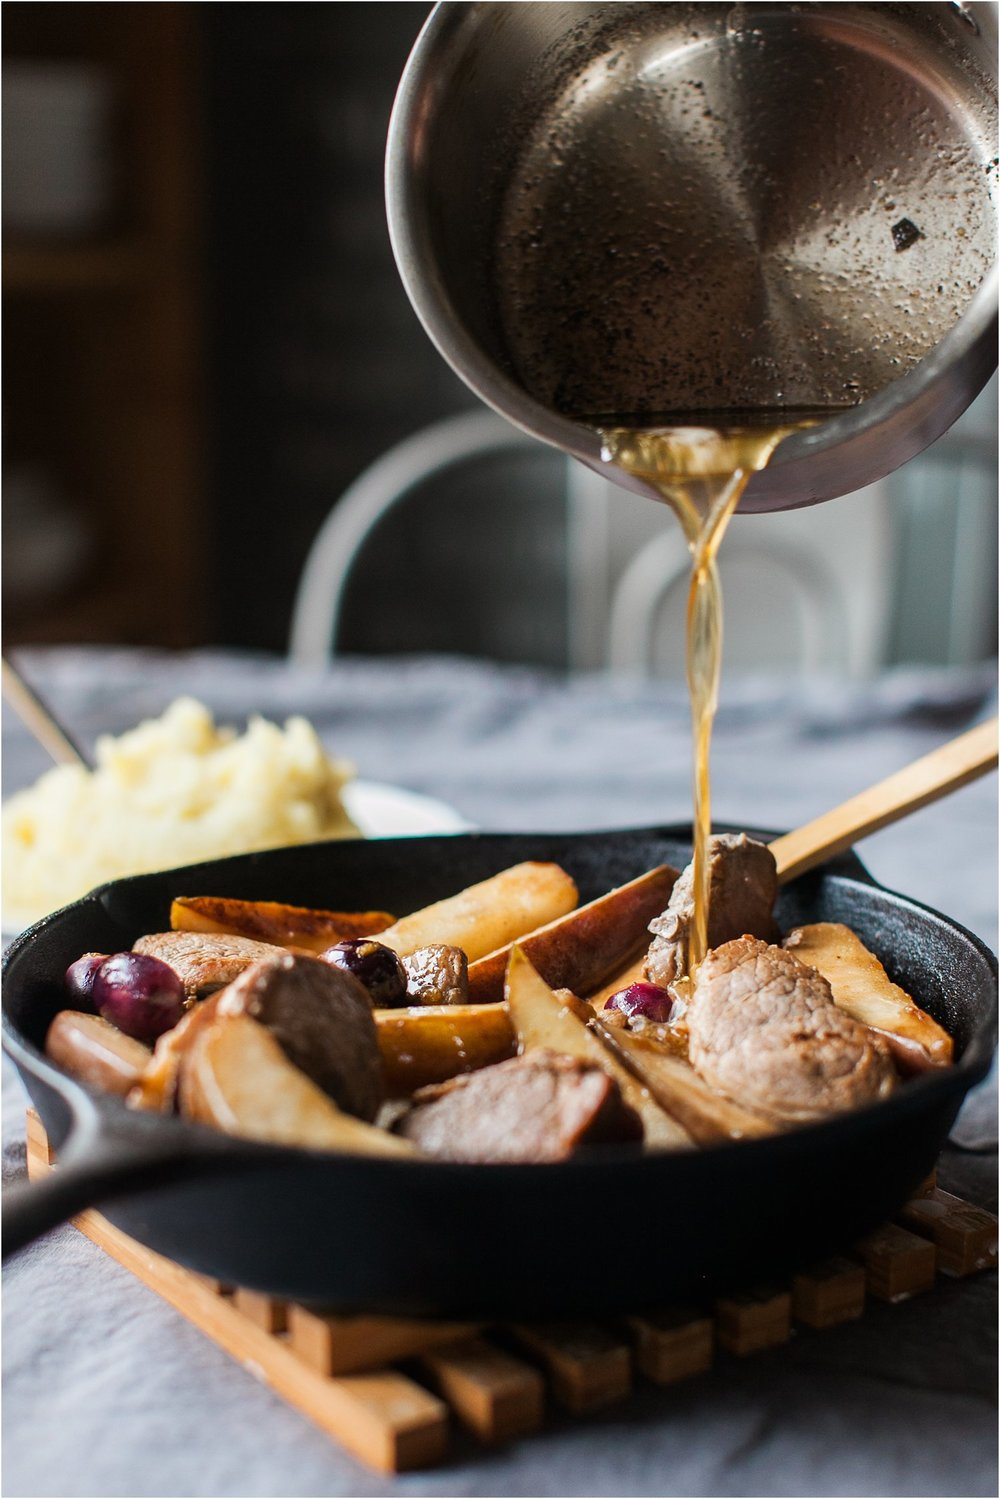 Pork & Pears with Brown Butter Sage Sauce & Garlic Mashed Potatoes | Easy Dinner | Feast & Dwell